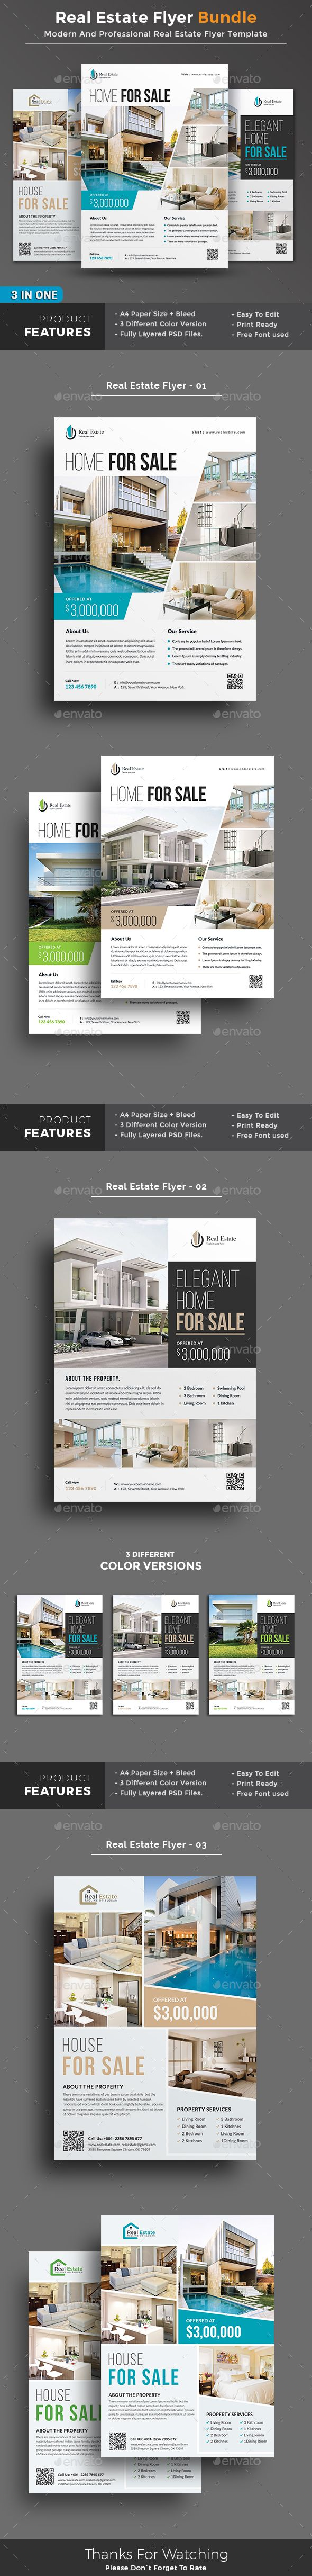 4744 Best Flyer Templates Images By Krista Jurado On Pinterest